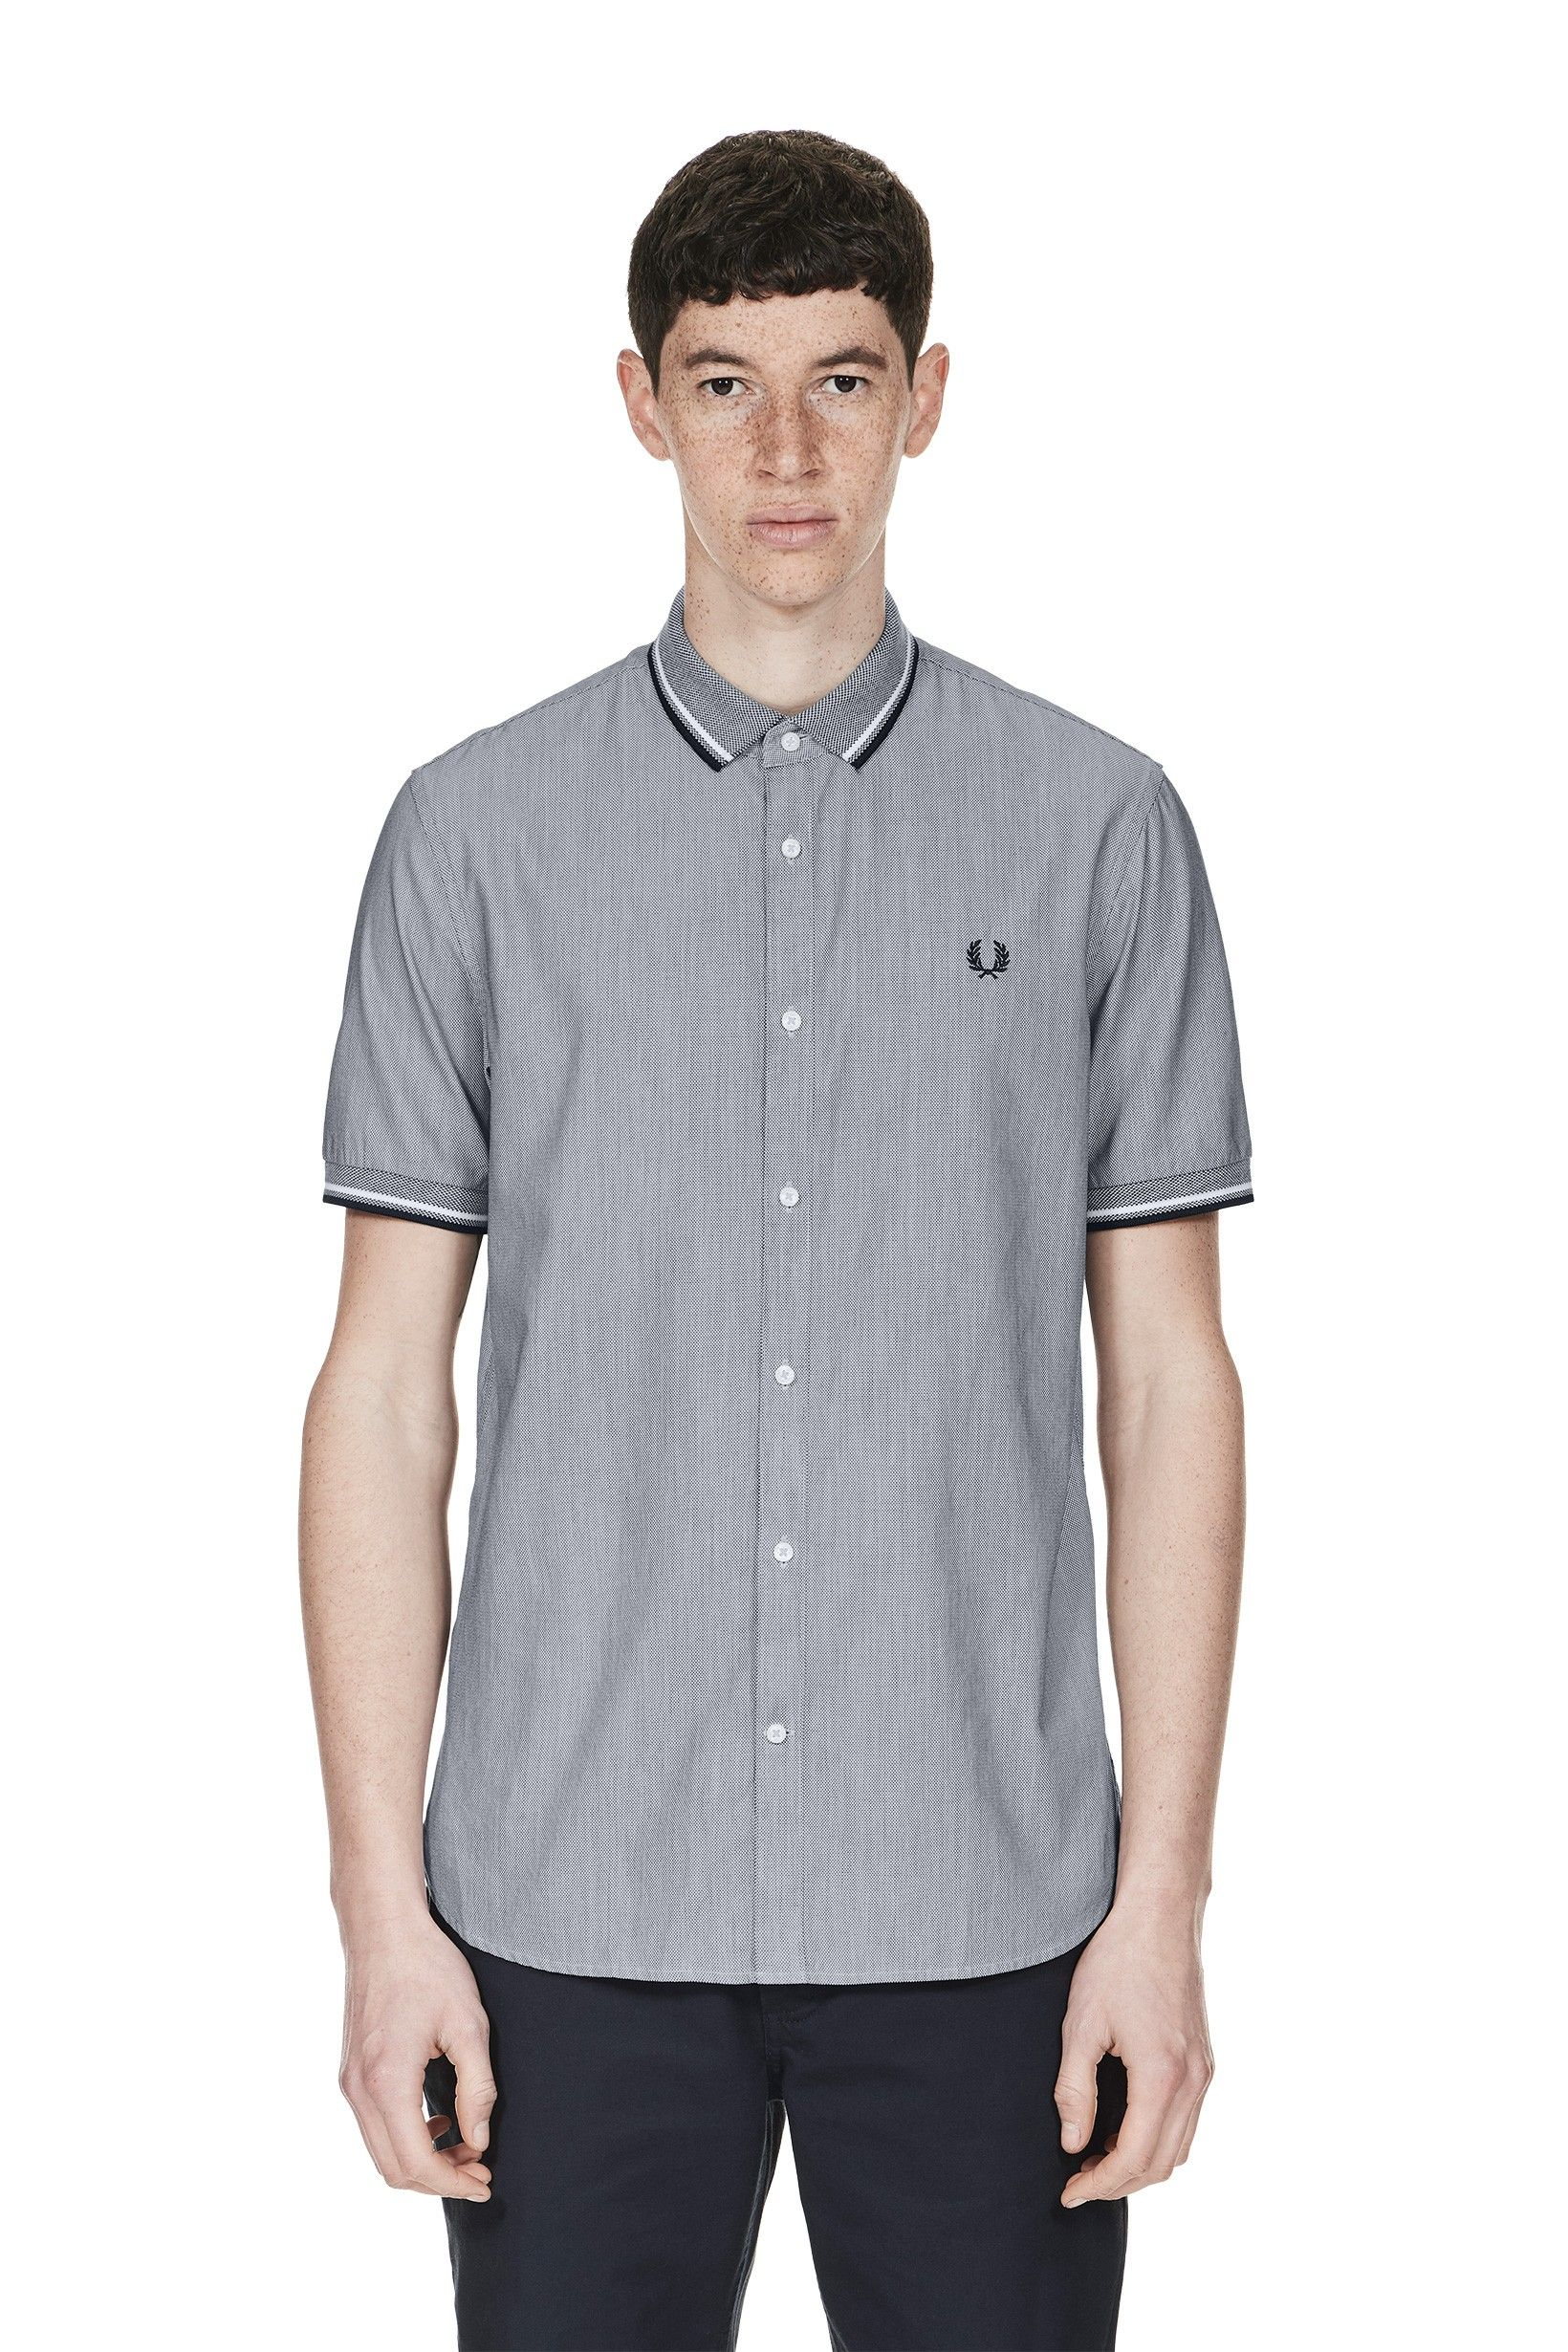 Fred Perry - Knitted Collar Chequerboard Shirt Navy